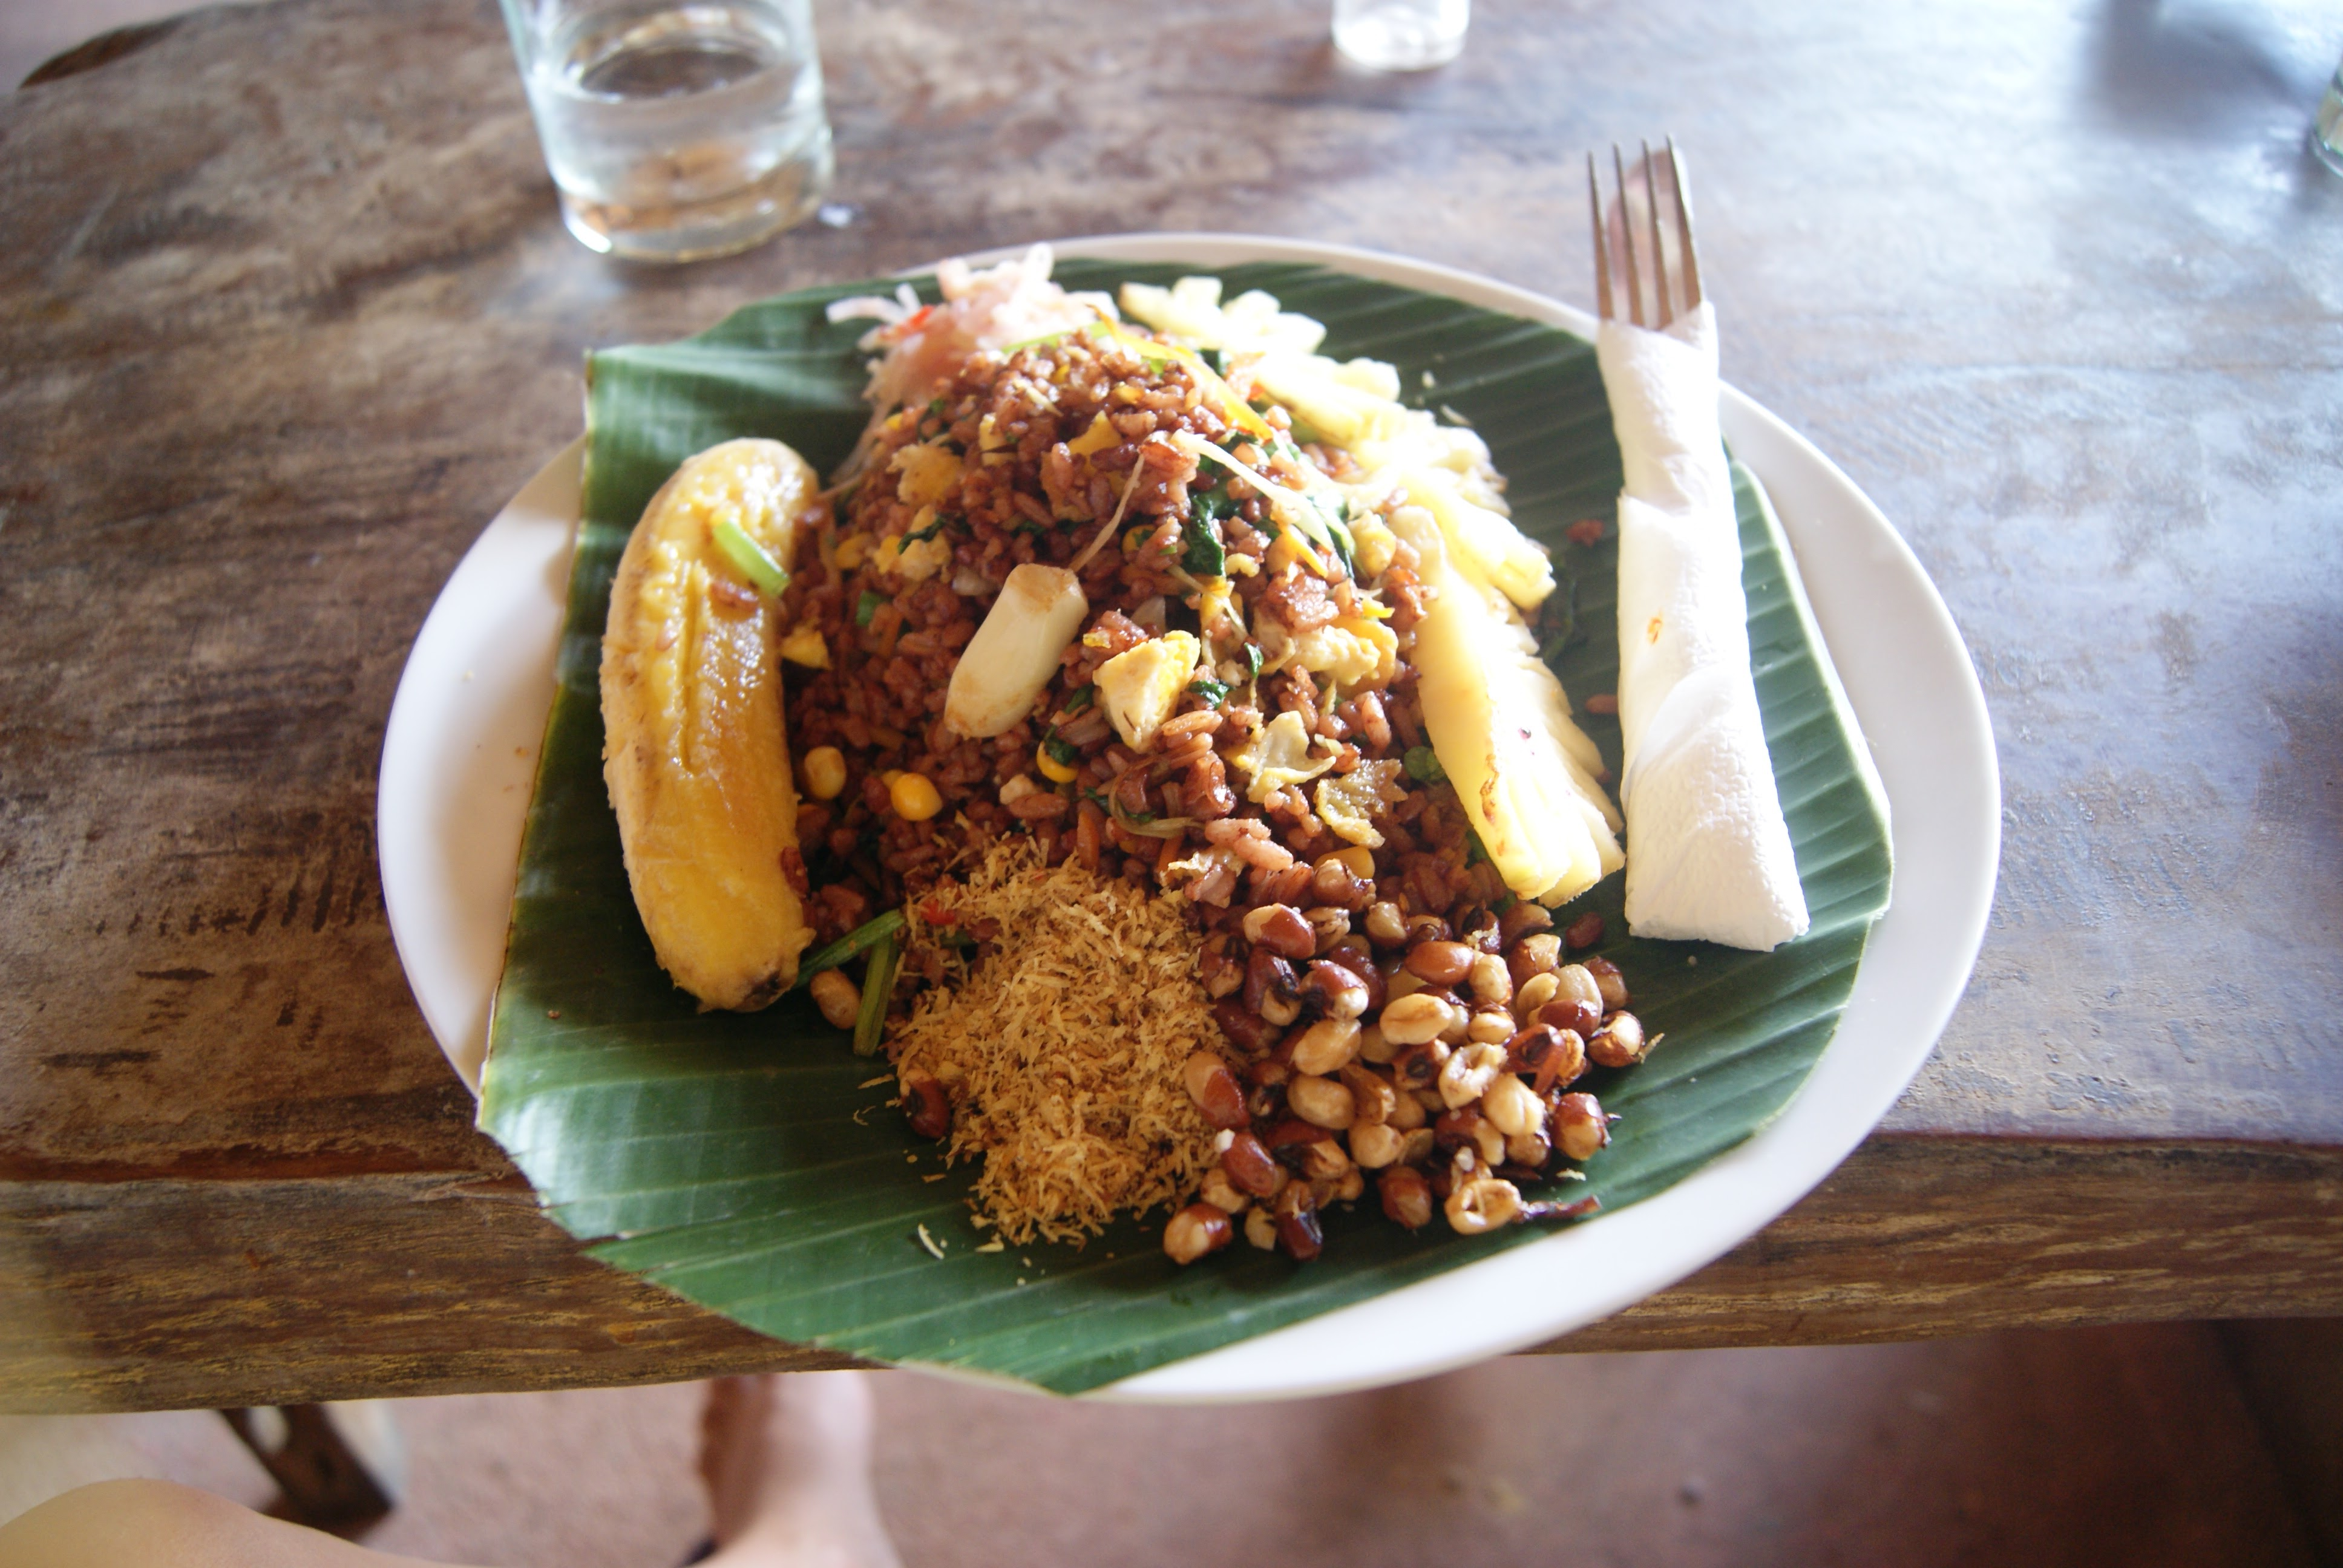 Things to do in Ubud Bali - A Meal At The Yellow Flower